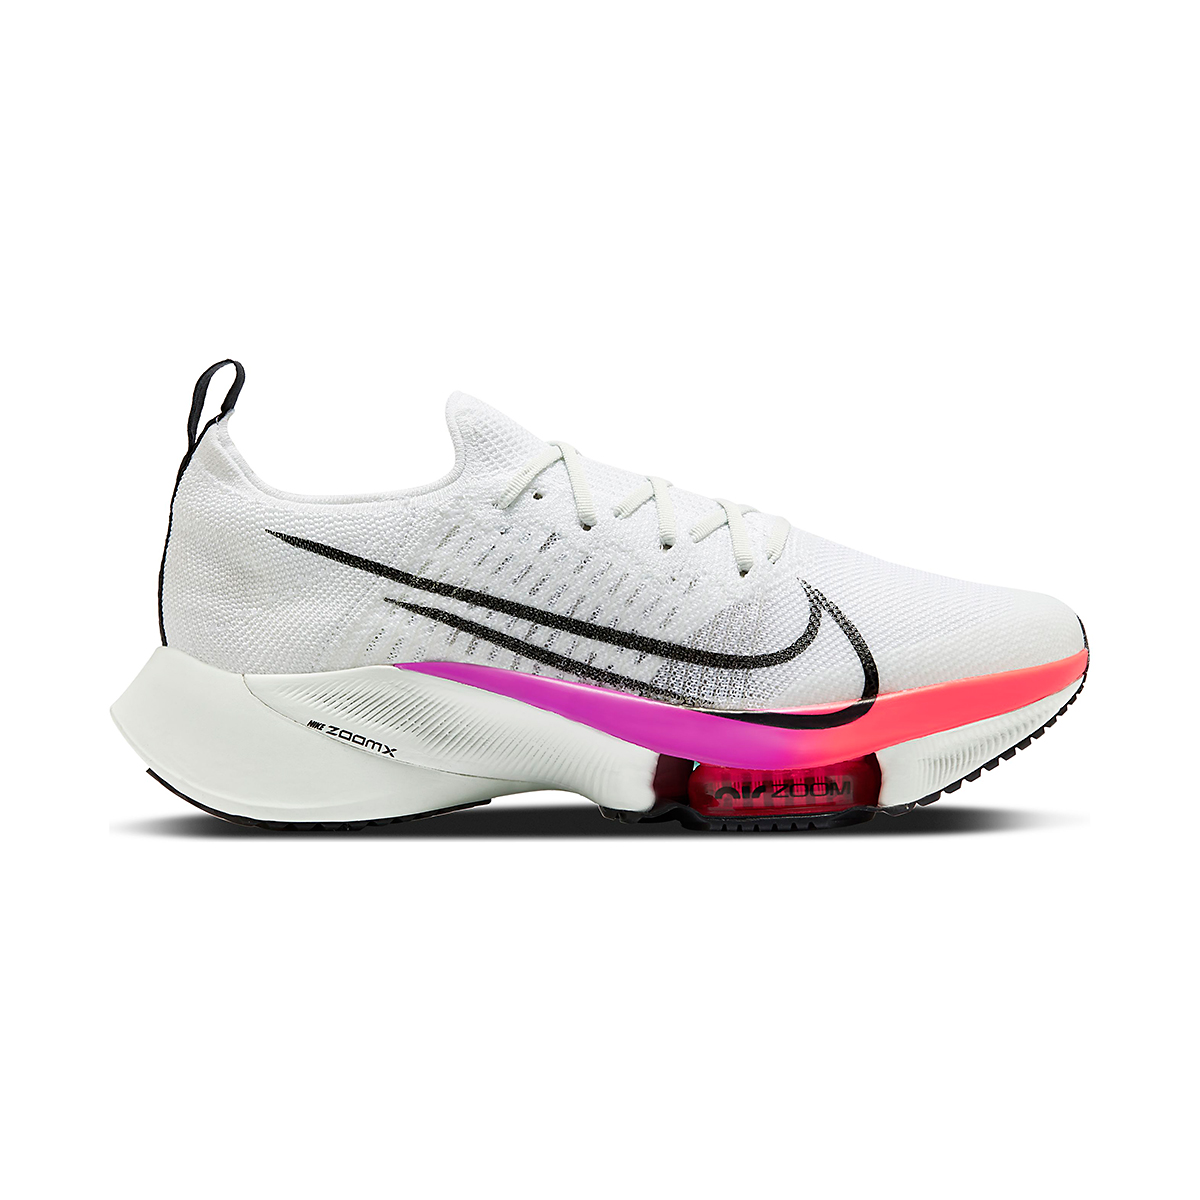 Men's Nike Air Zoom Tempo NEXT% Running Shoe - Color: White/Black-Hyper Violet-Flash Crimson - Size: 6 - Width: Regular, White/Black-Hyper Violet-Flash Crimson, large, image 1